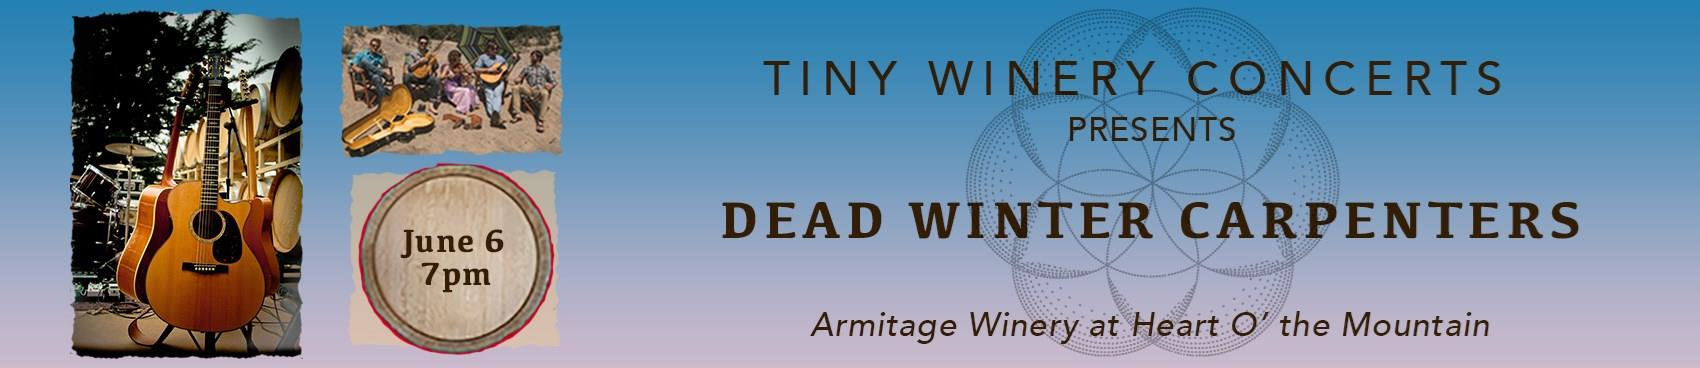 Tiny Winery Concerts Presents Dead Winter Carpenters